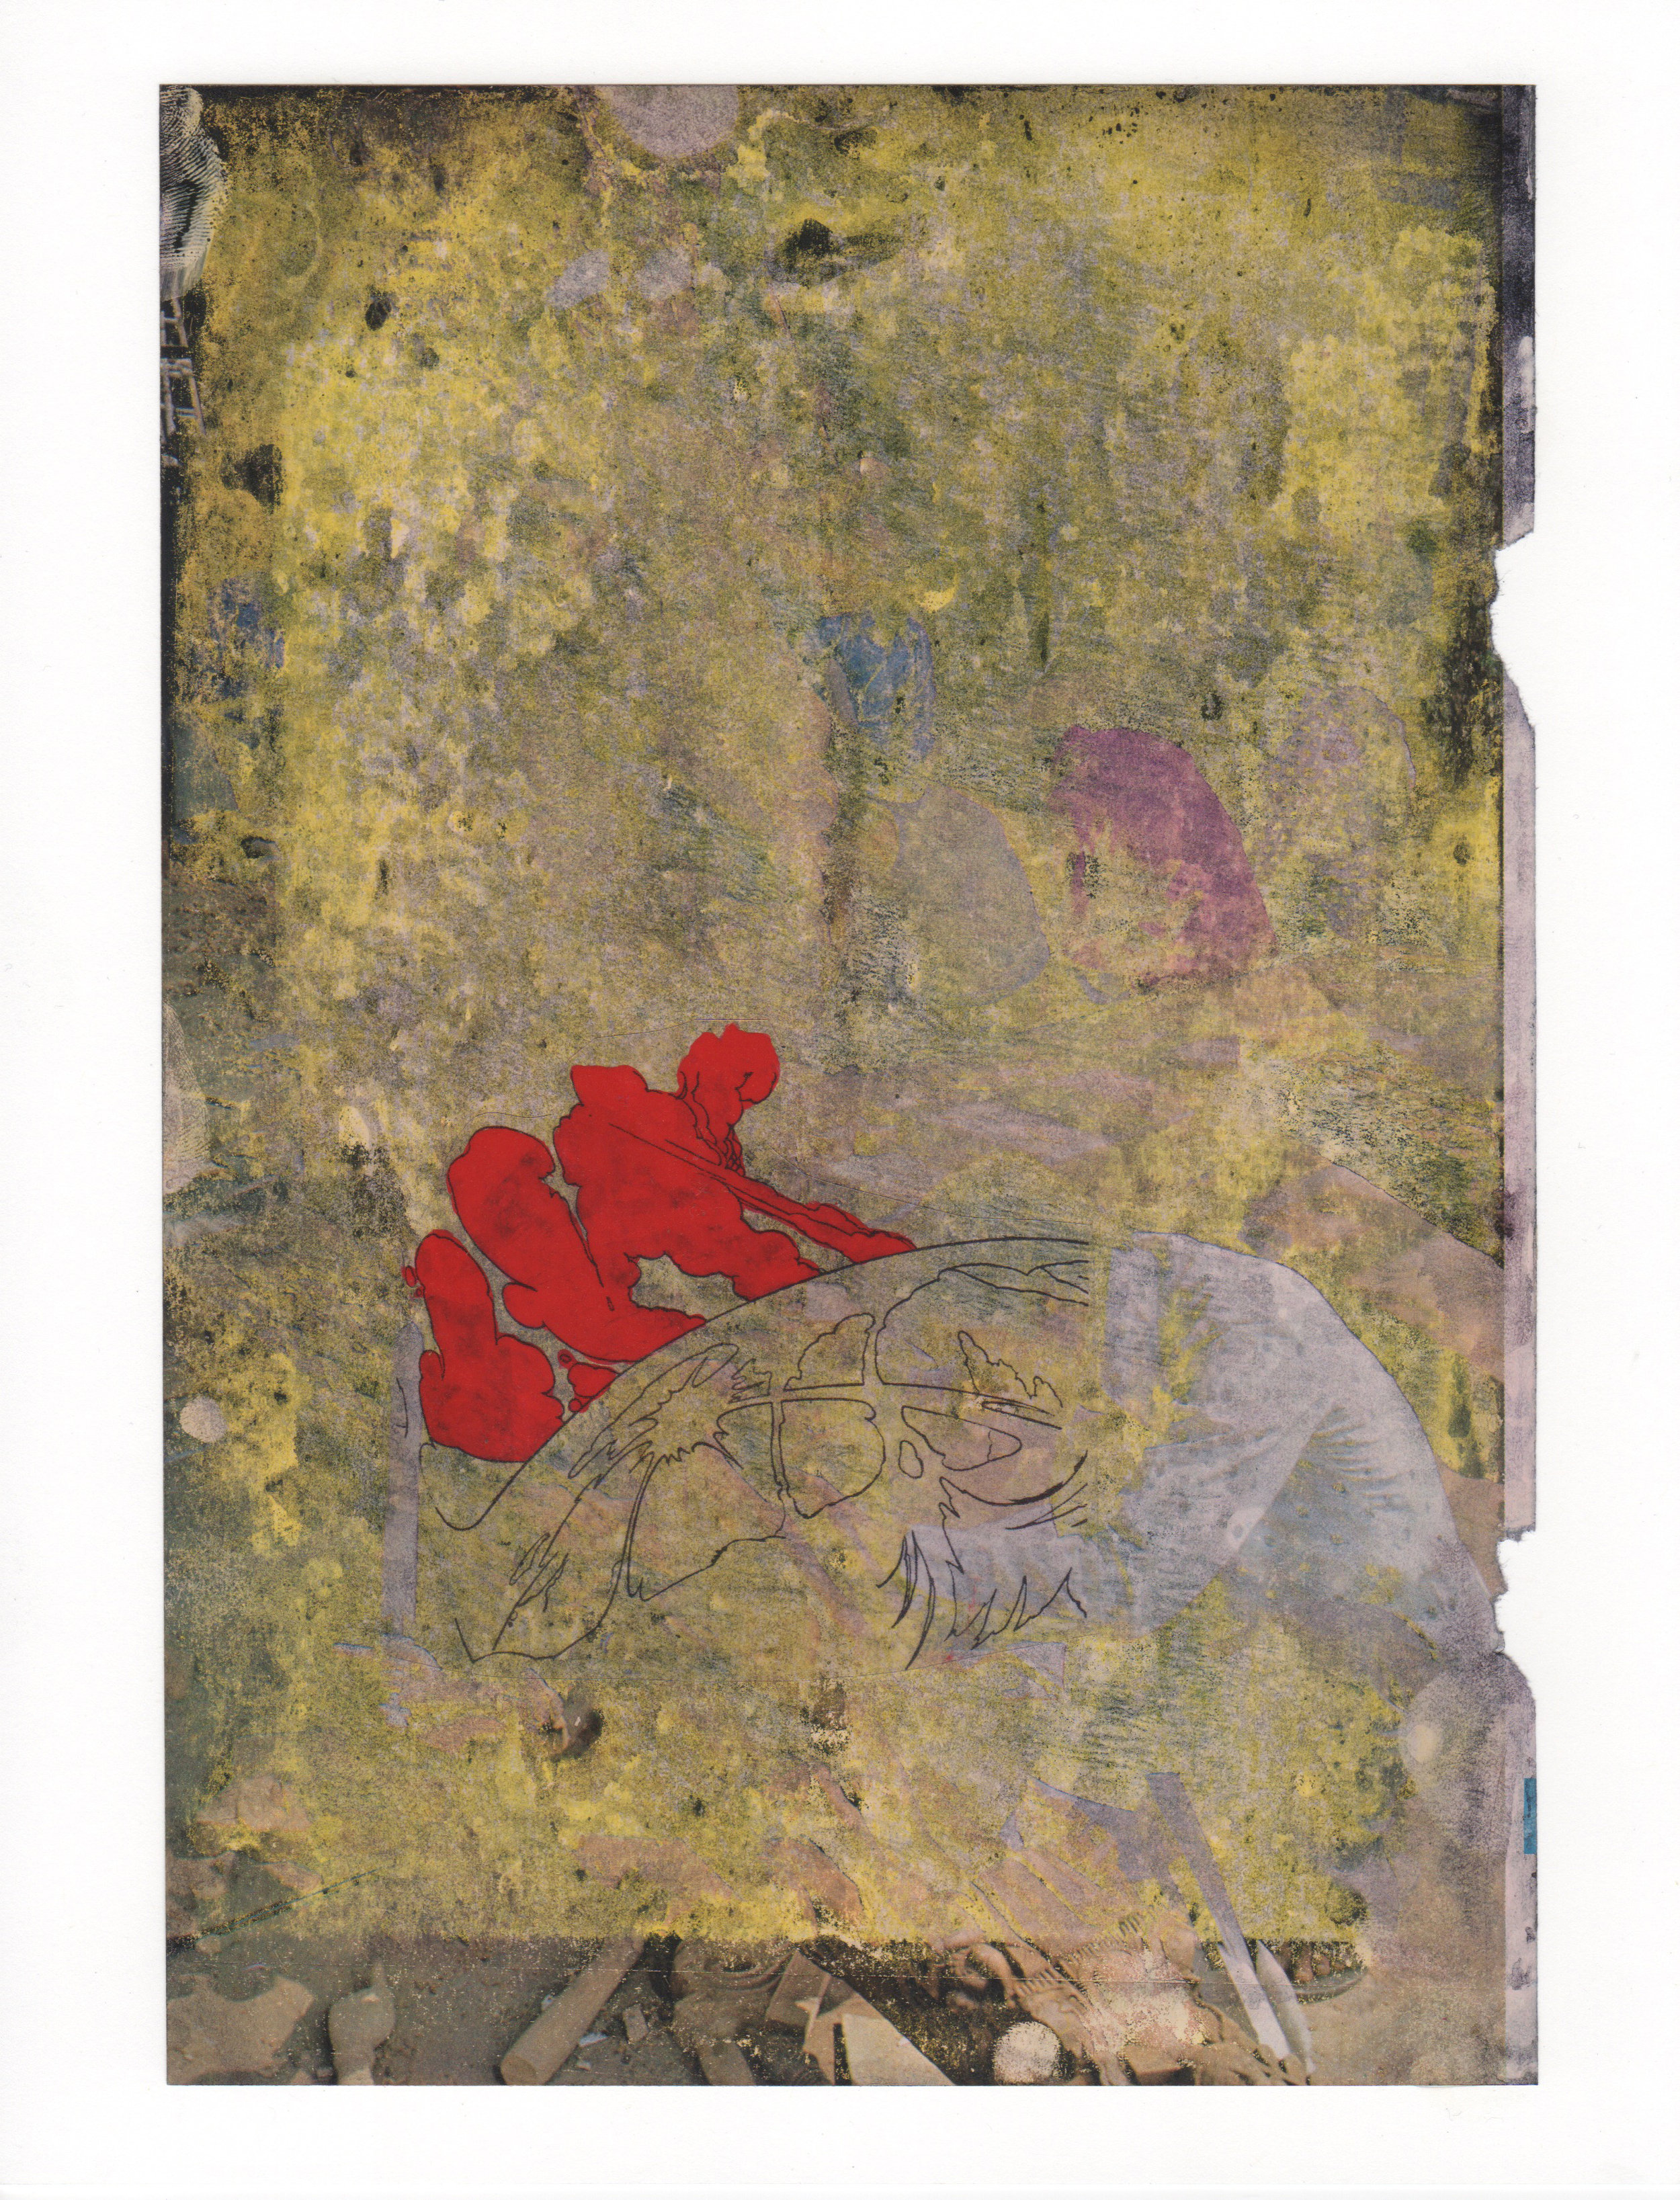 Big Super Action 2015 acrylic mylar archival ink and paper 8 5 x 11-